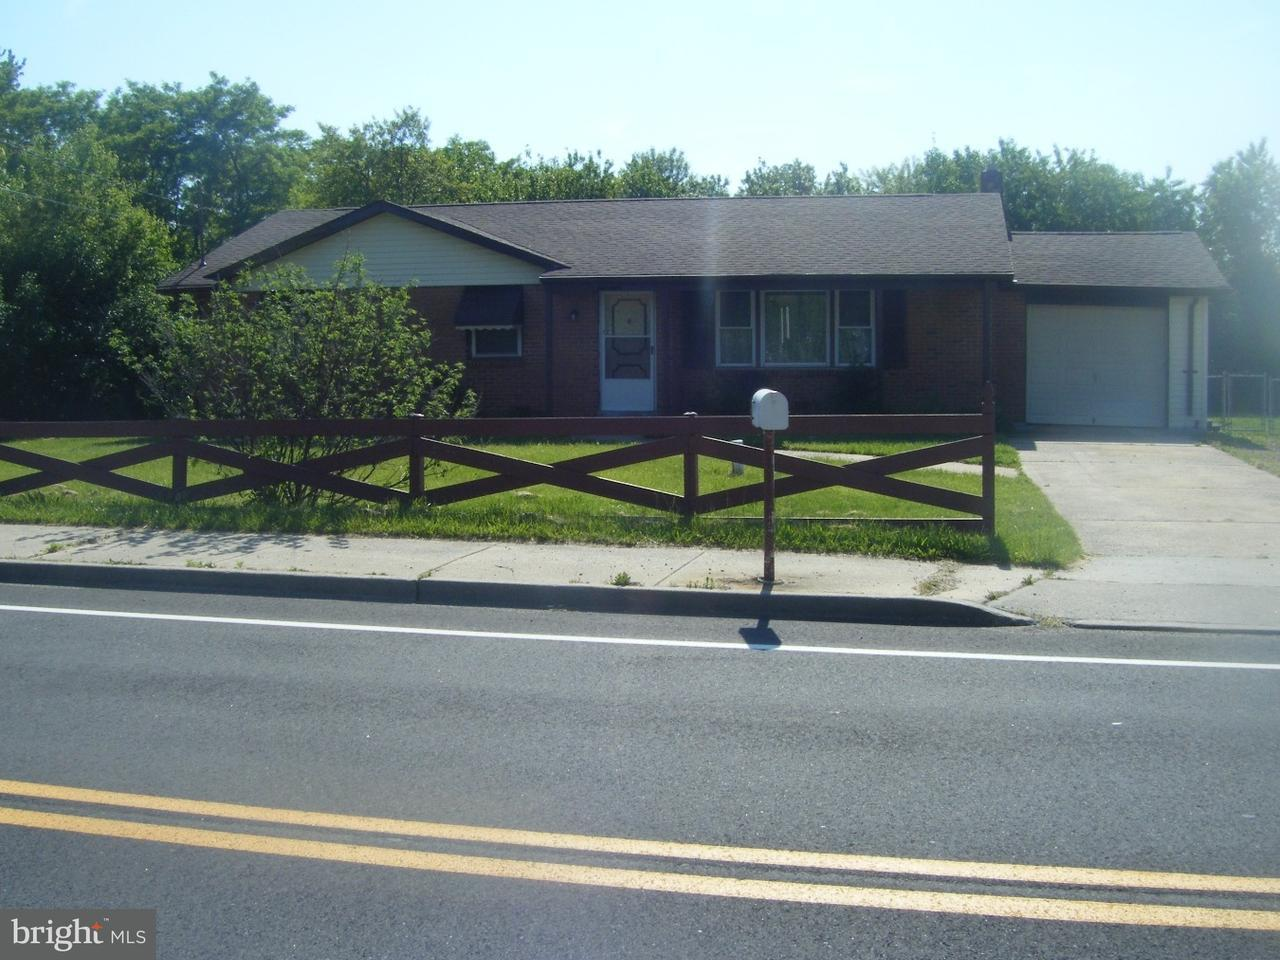 Single Family Home for Rent at 488 WRIGHTSTOWN SYKESVILLE Road Wrightstown, New Jersey 08562 United States